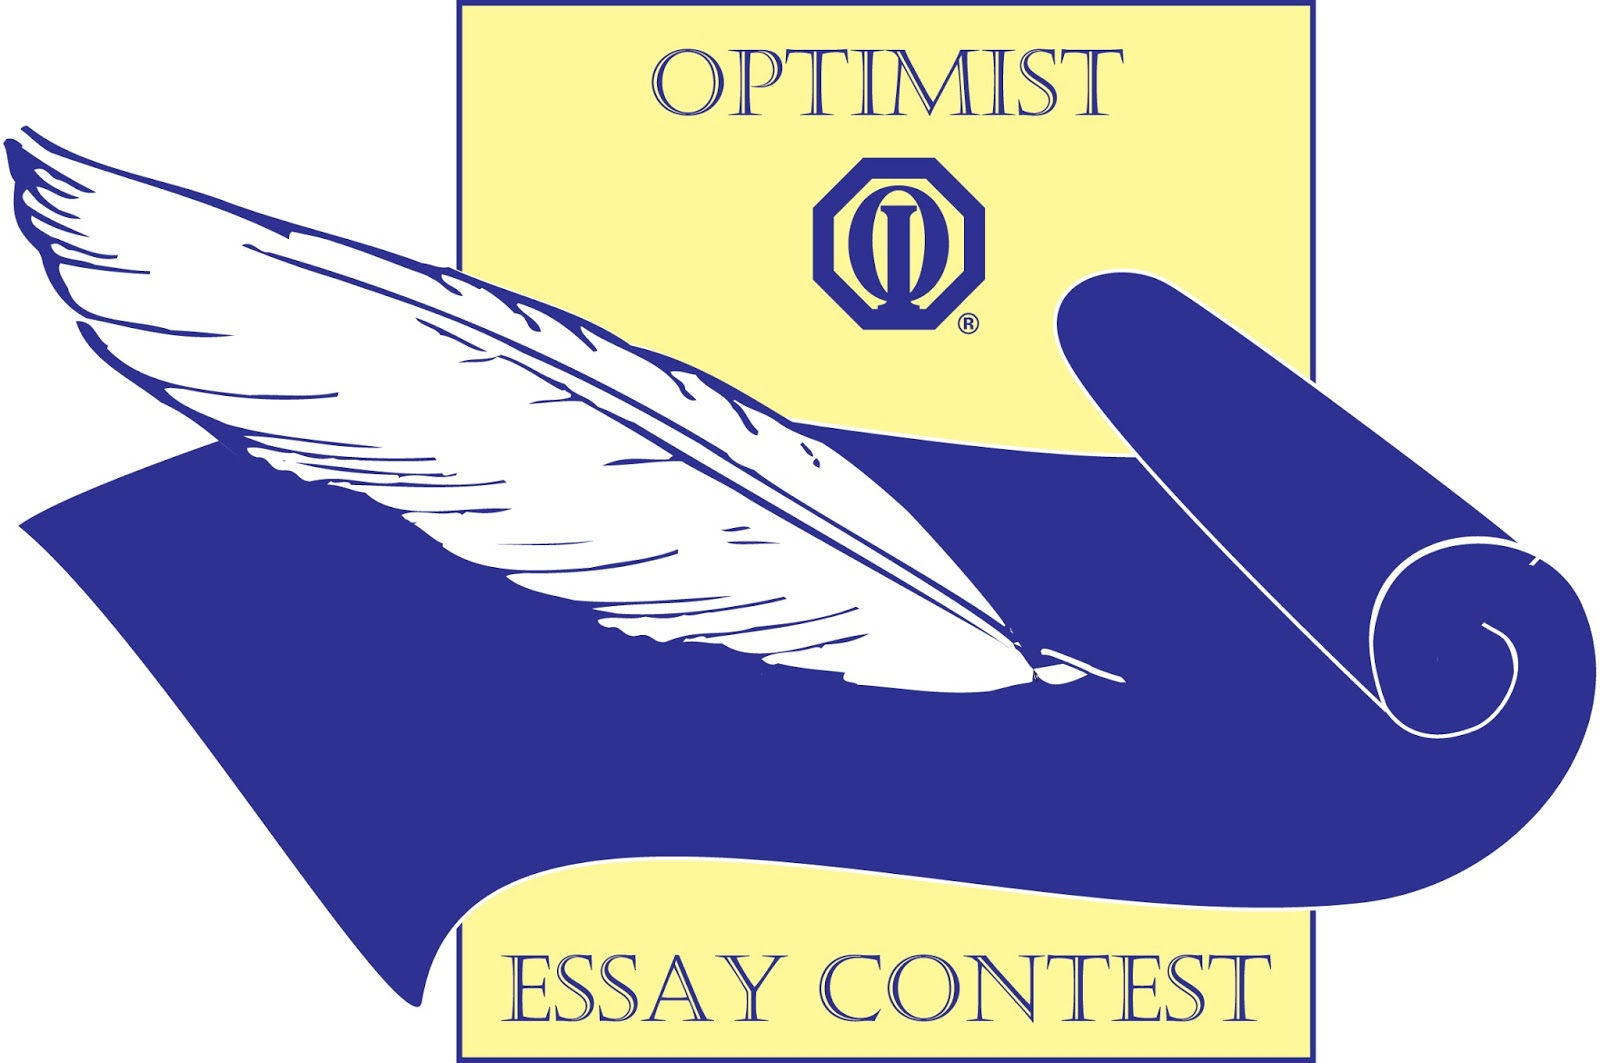 optimist essay contest scholarship Optimist international essay contest we have placed this publication on the optimist international website at wwwoptimistorg the essay section of the program planning guide contains instructions given in the form of a scholarship, savings bond or cash prize but are completely.